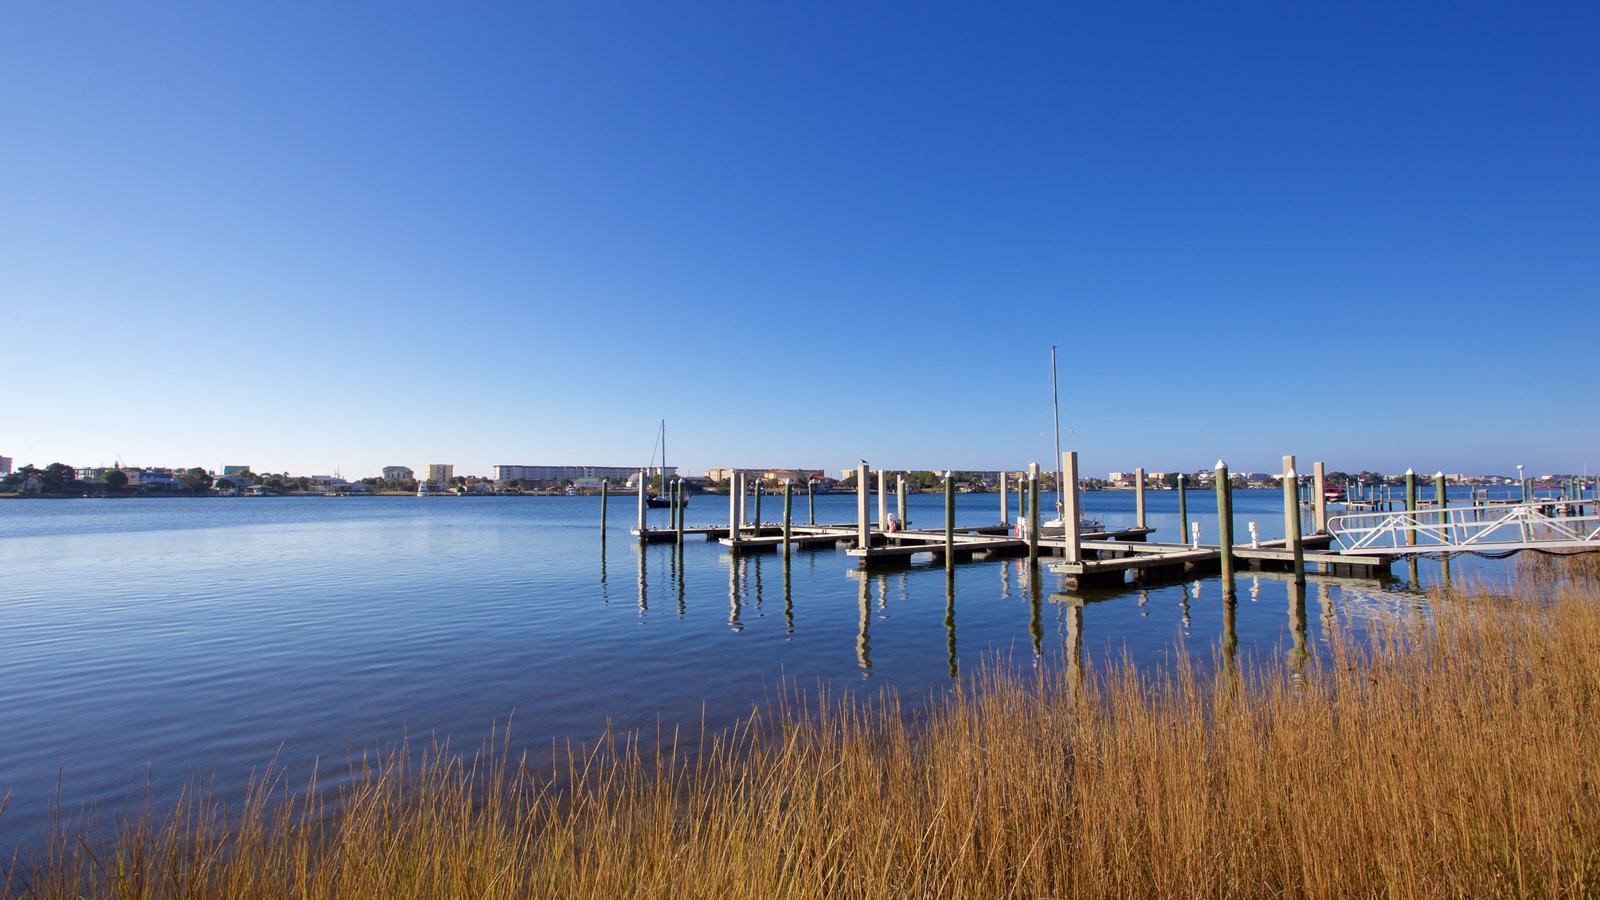 Fort Walton Beach showing a bay or harbor